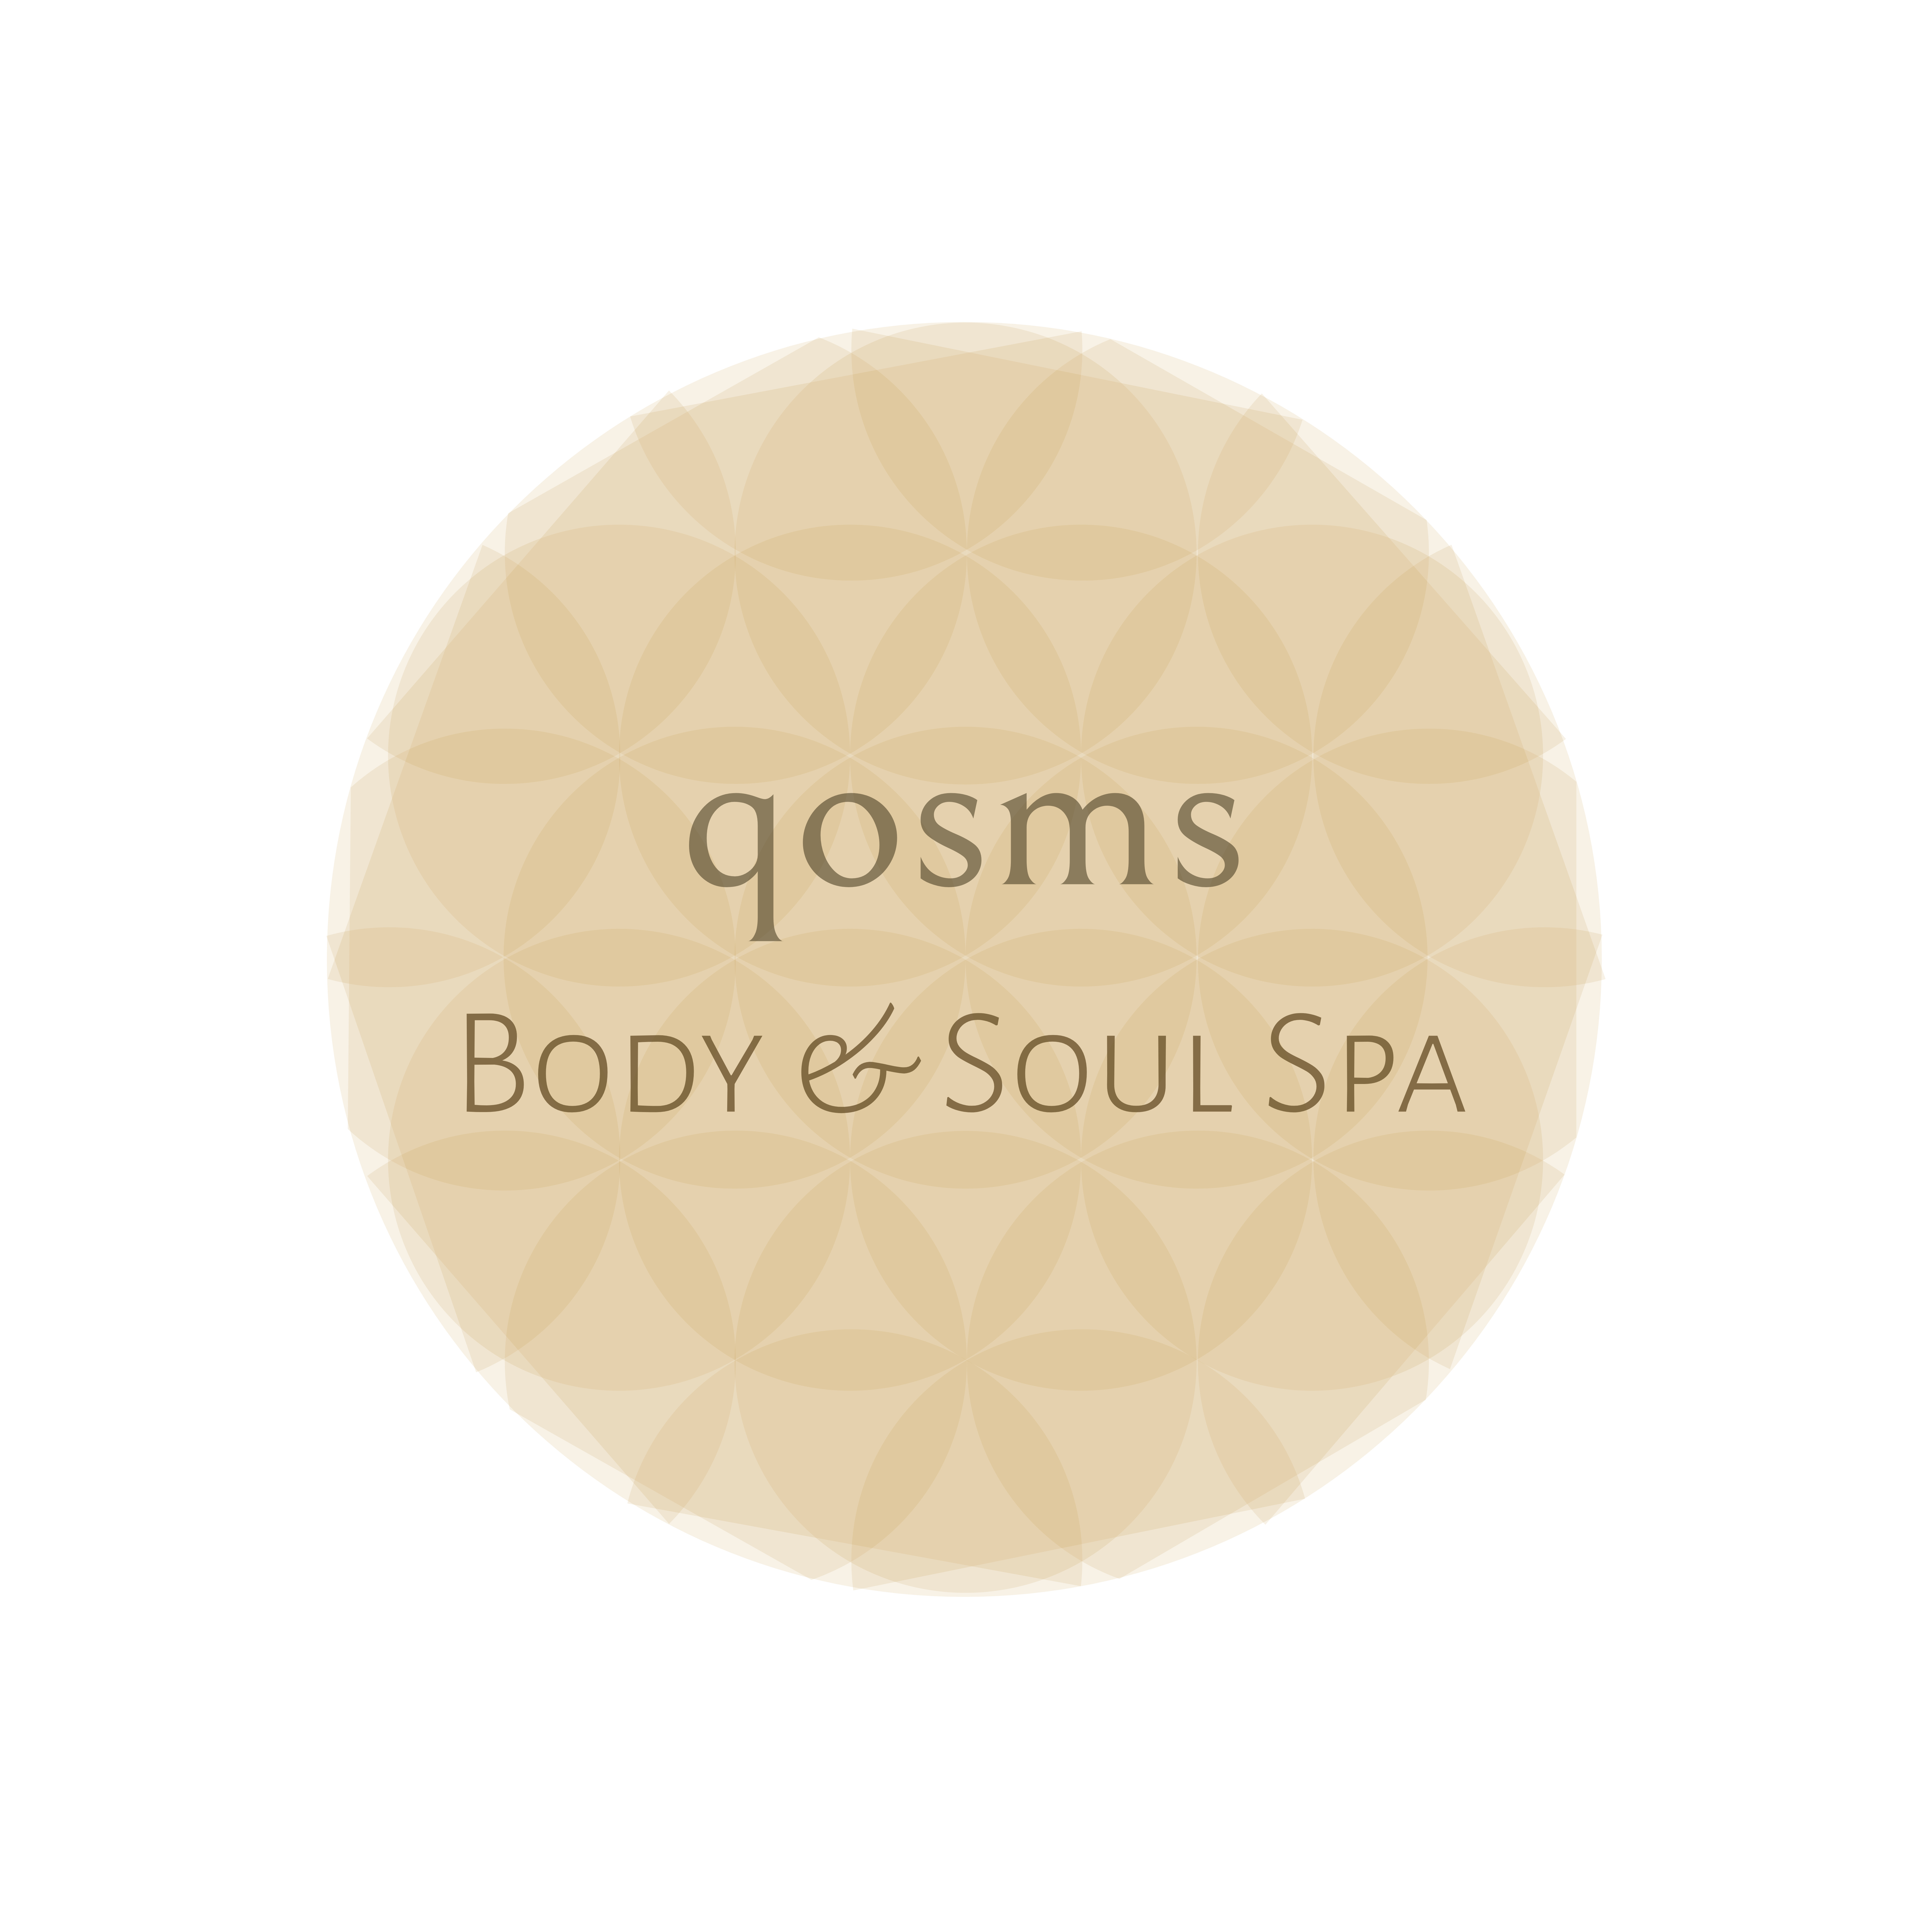 qosms Body & Soul Spa